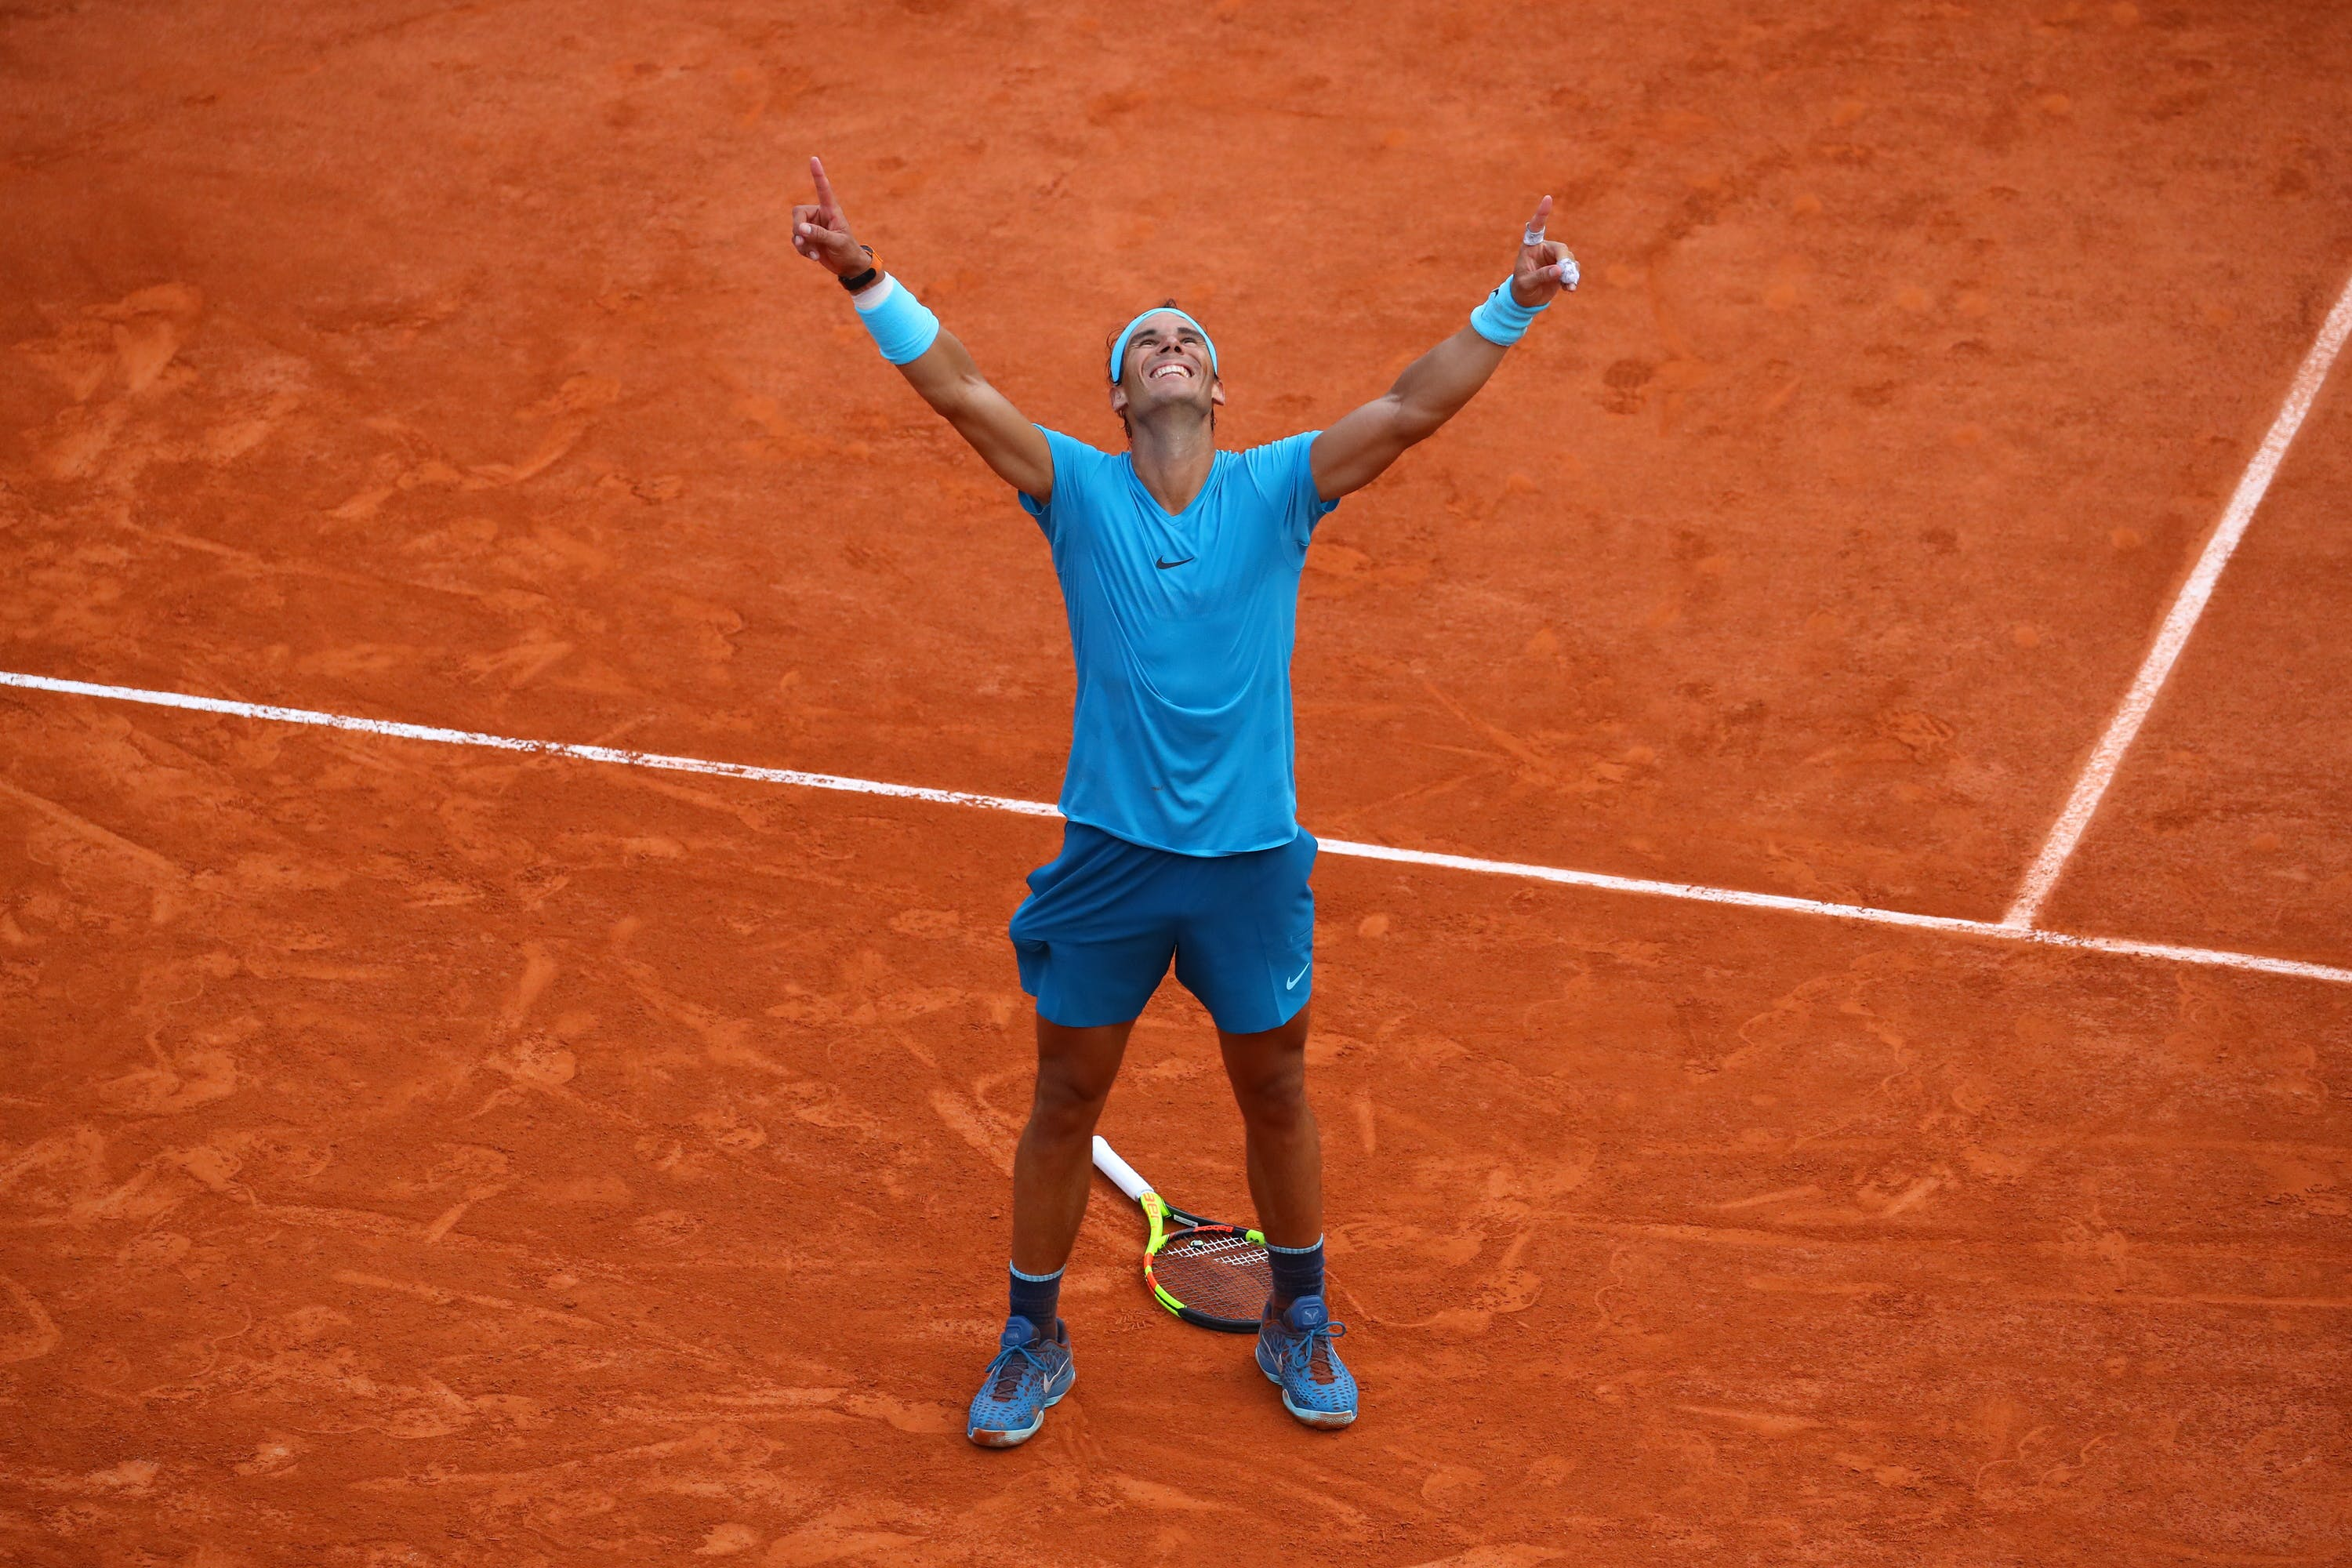 Rafael Nadal smiling and pointing the fingers to the sky as he wins Roland-Garros 2018